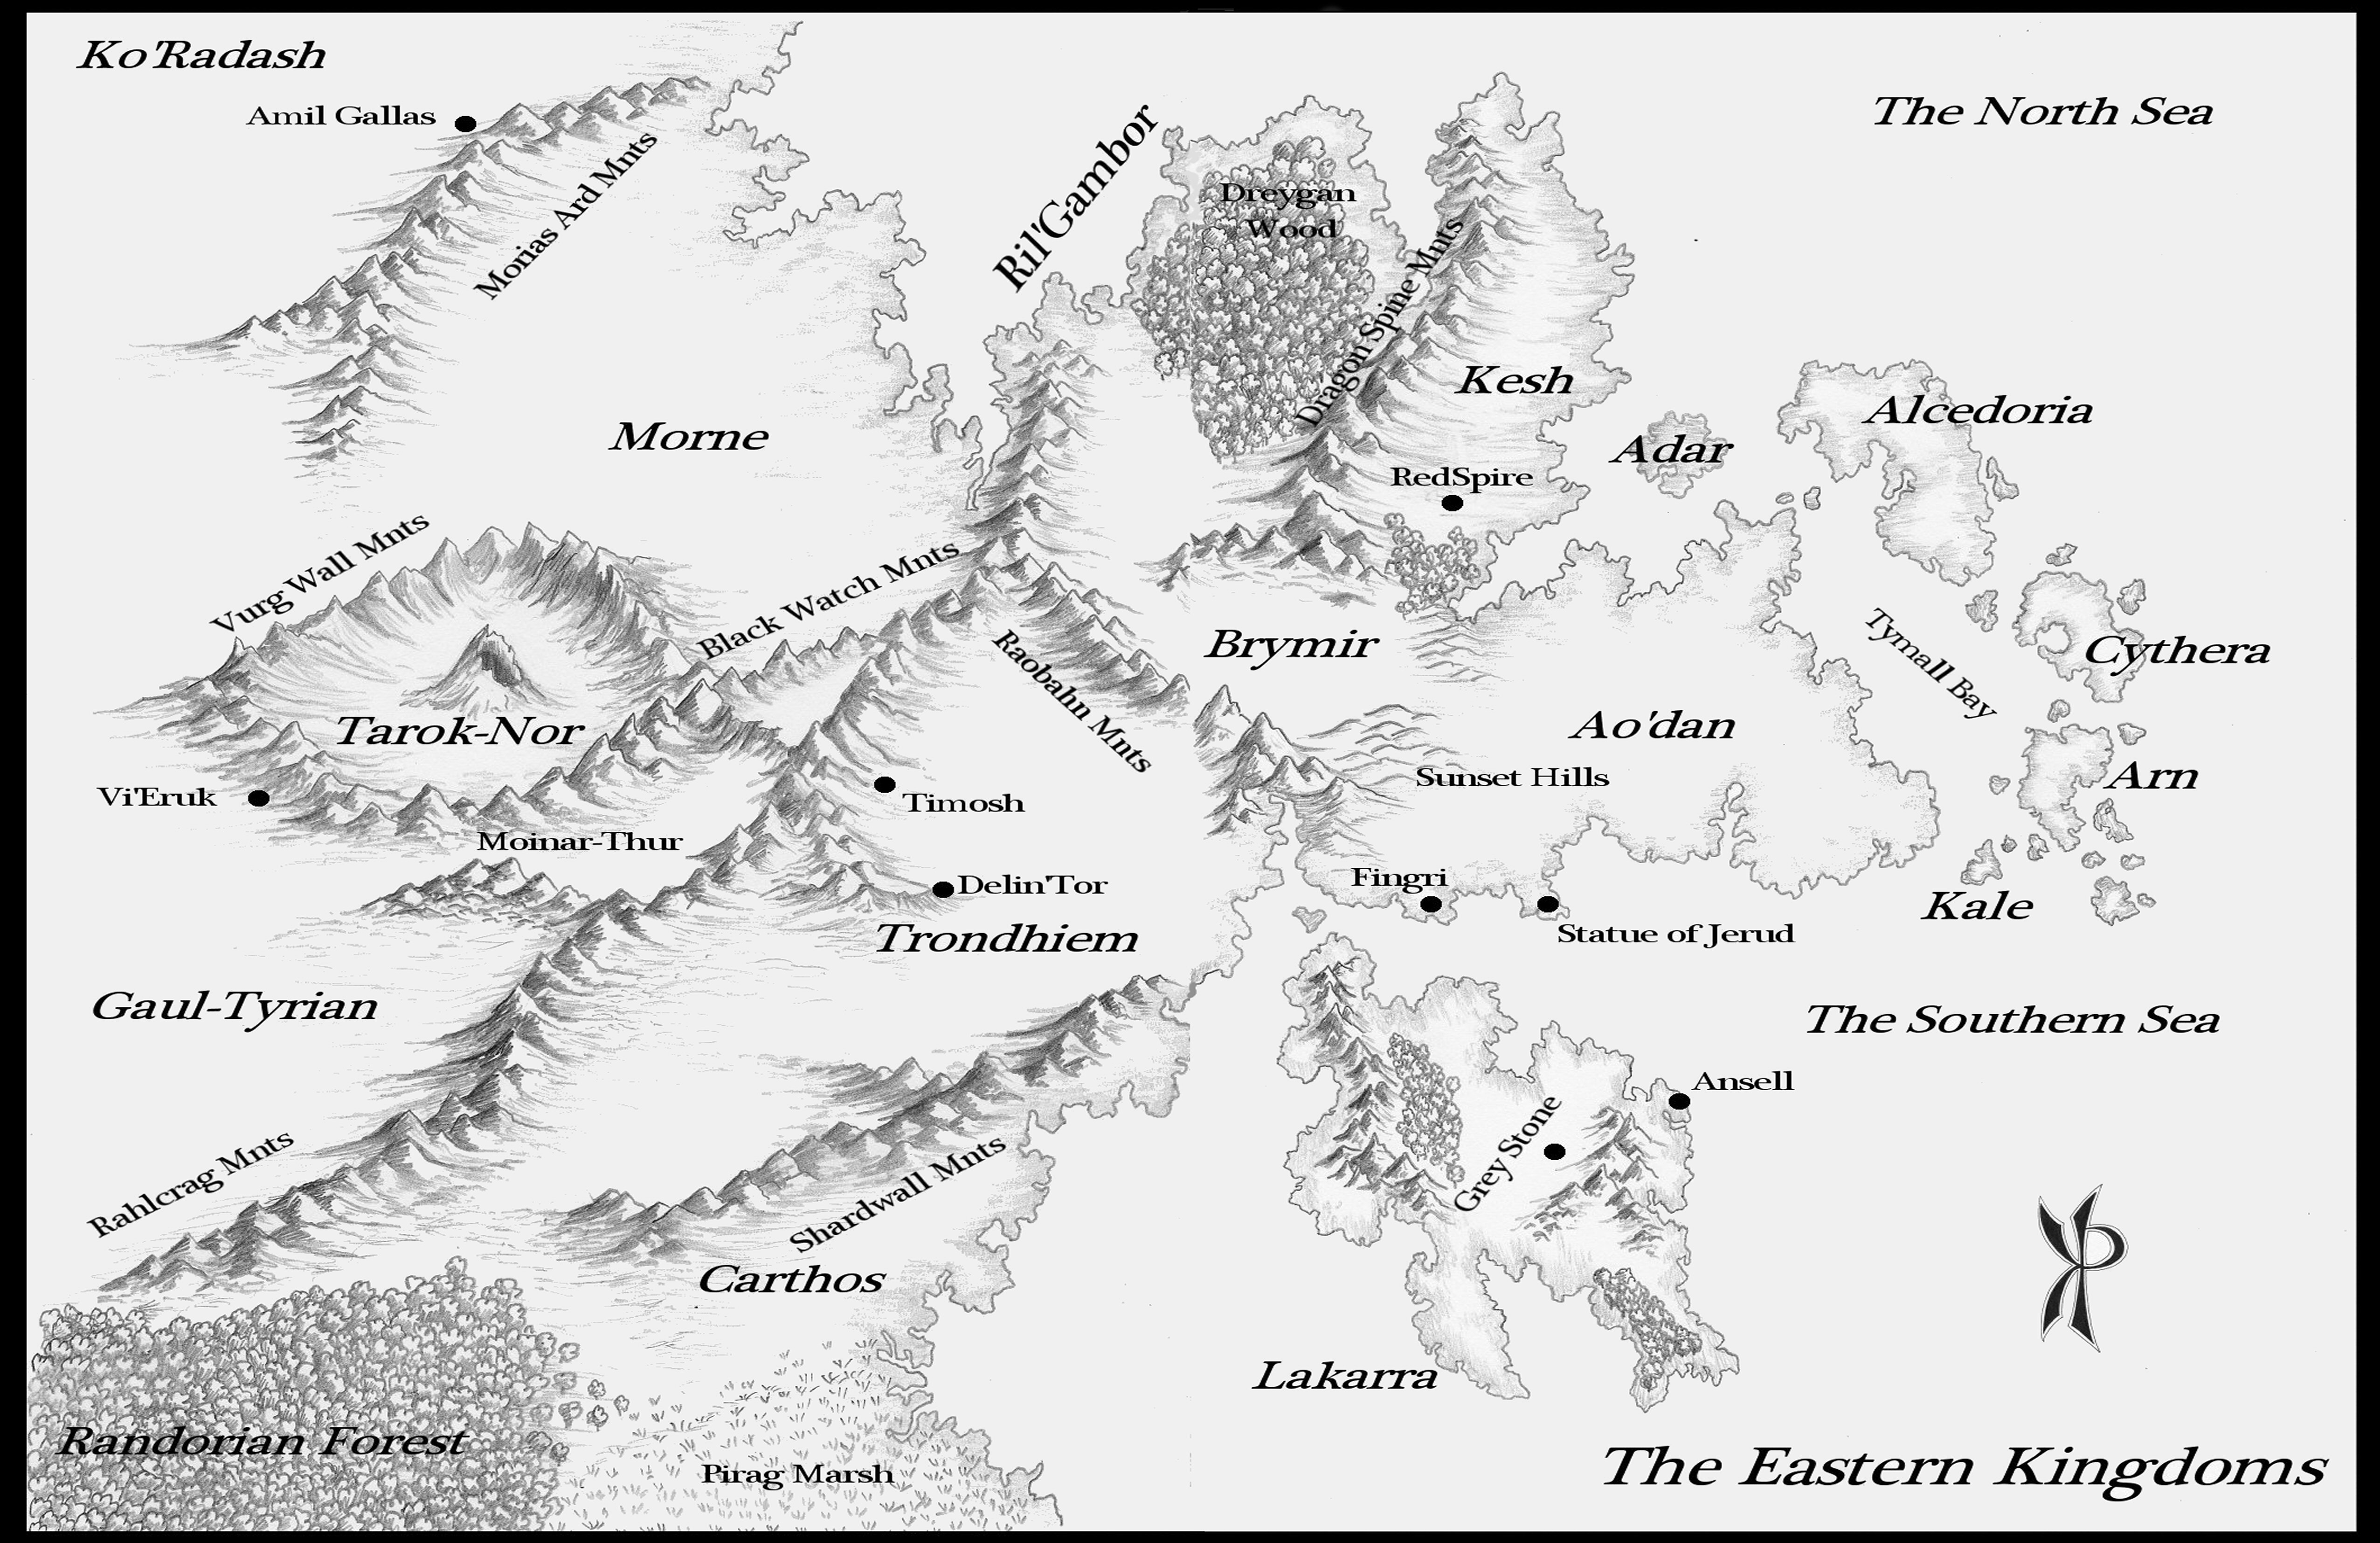 The Eastern Kingdoms